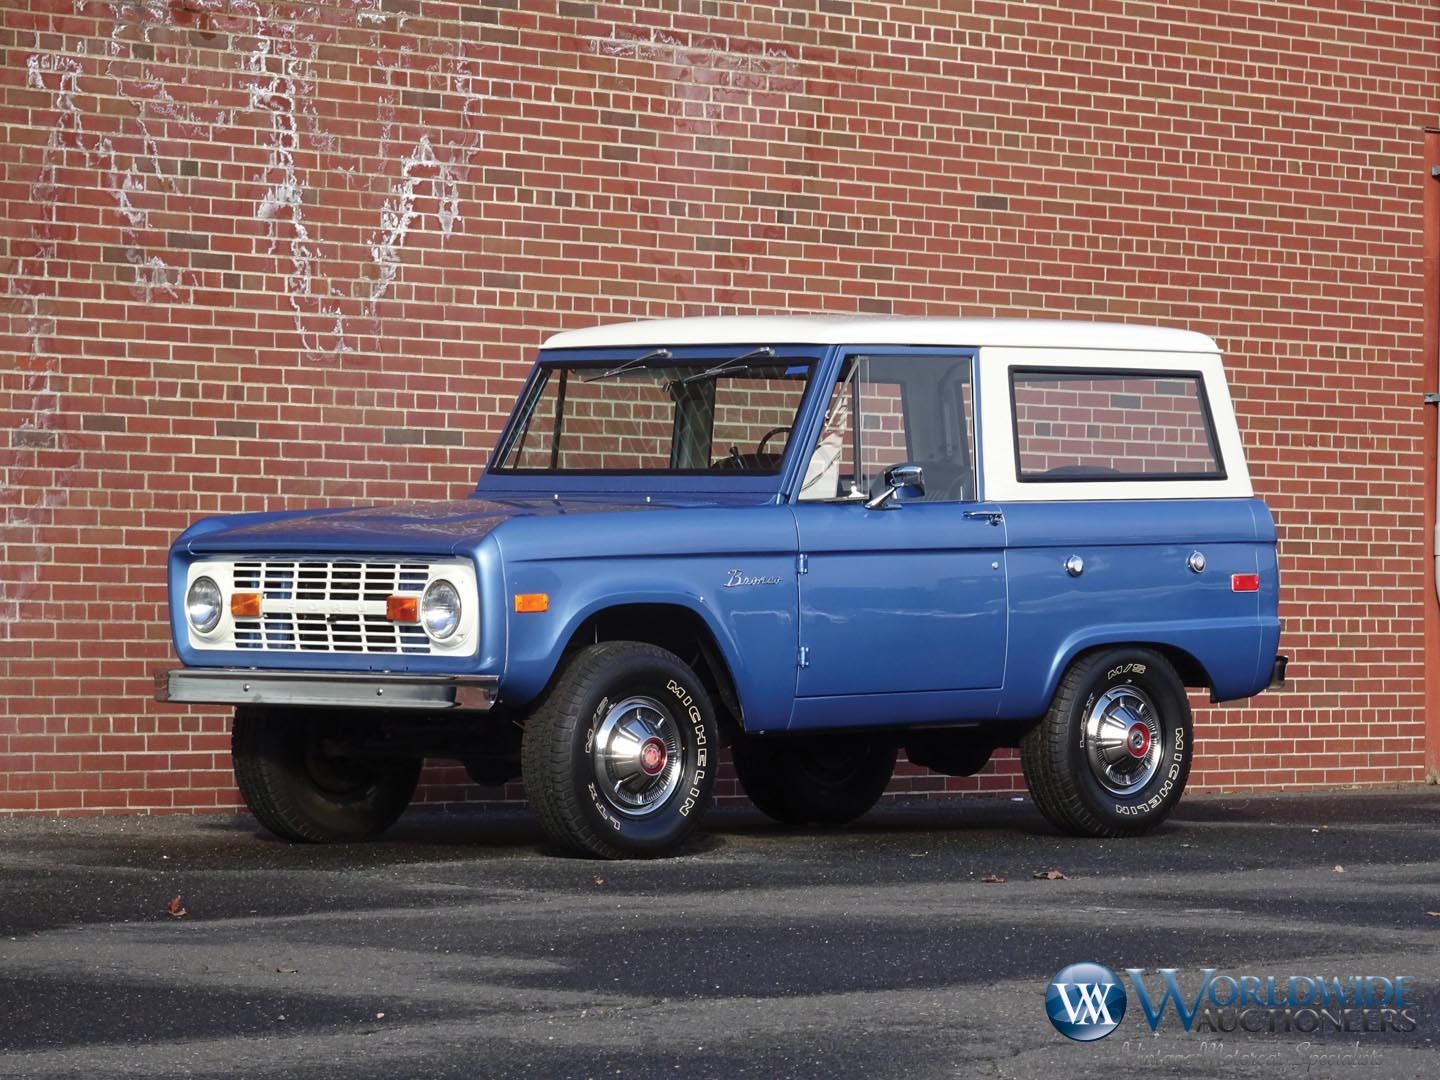 1971 Ford Bronco U-100 4x4 Wagon